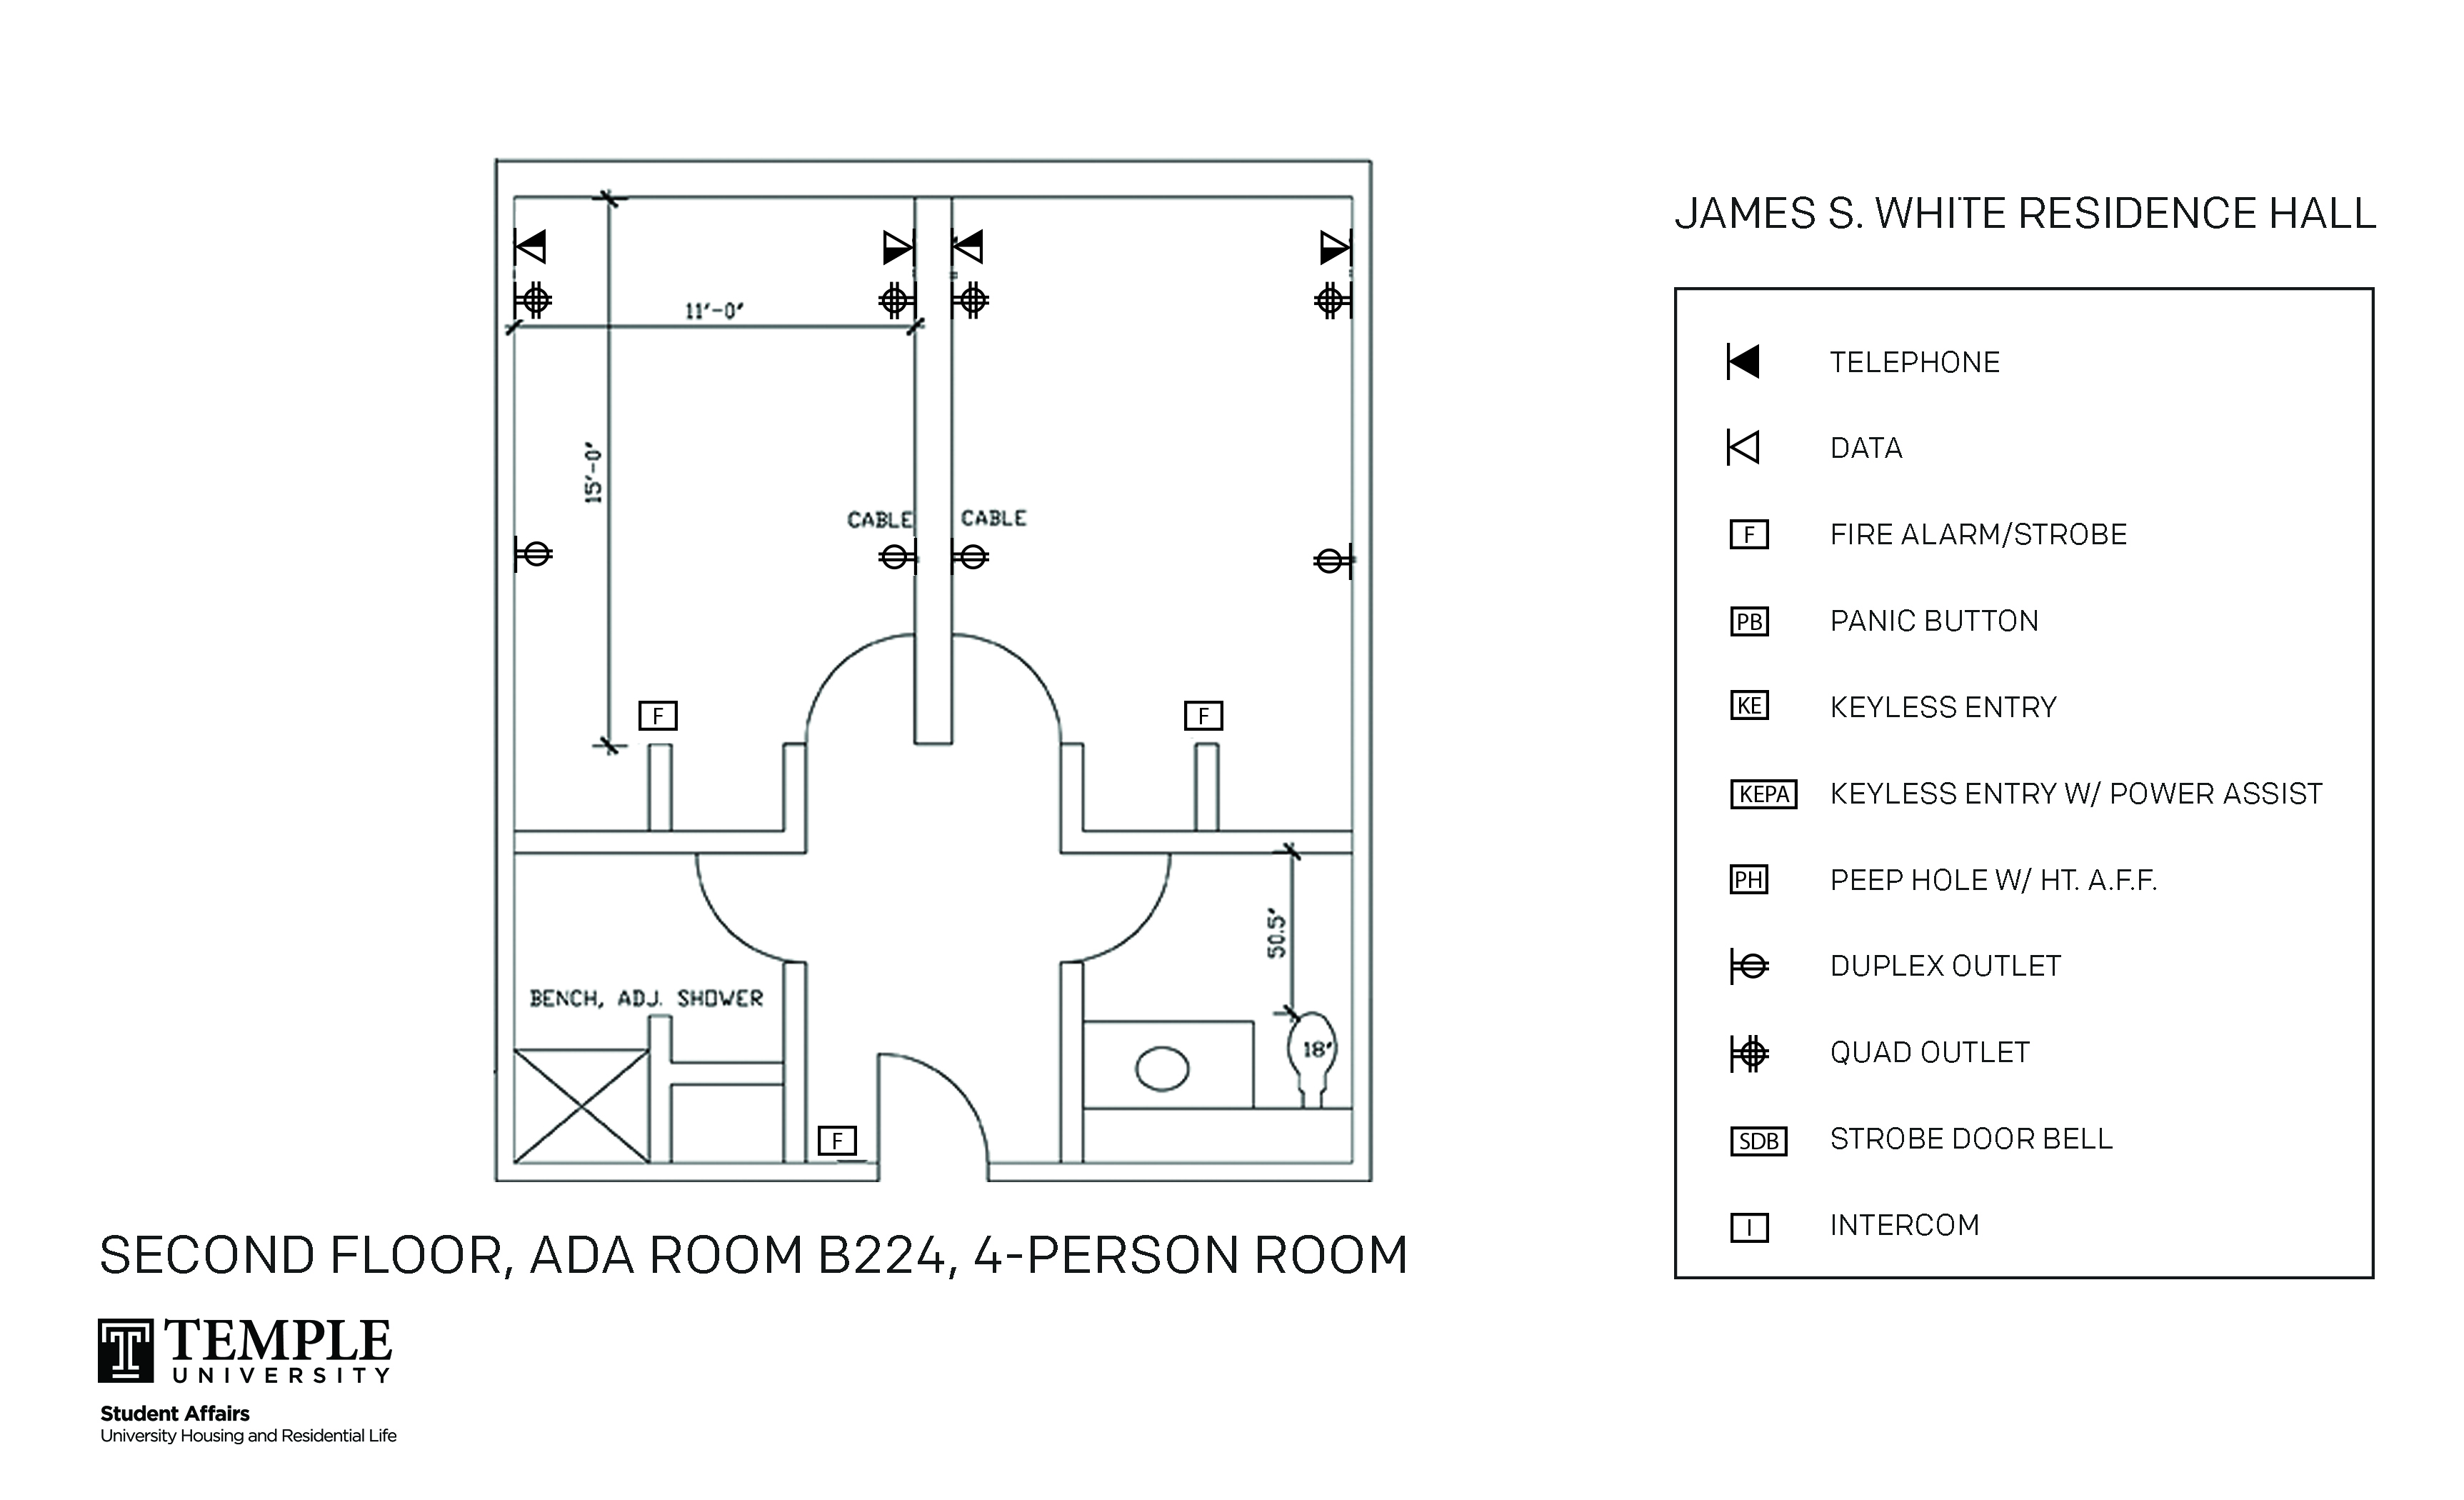 Accessible Room Diagrams: 4 person, 2 bedroom Suite - B224